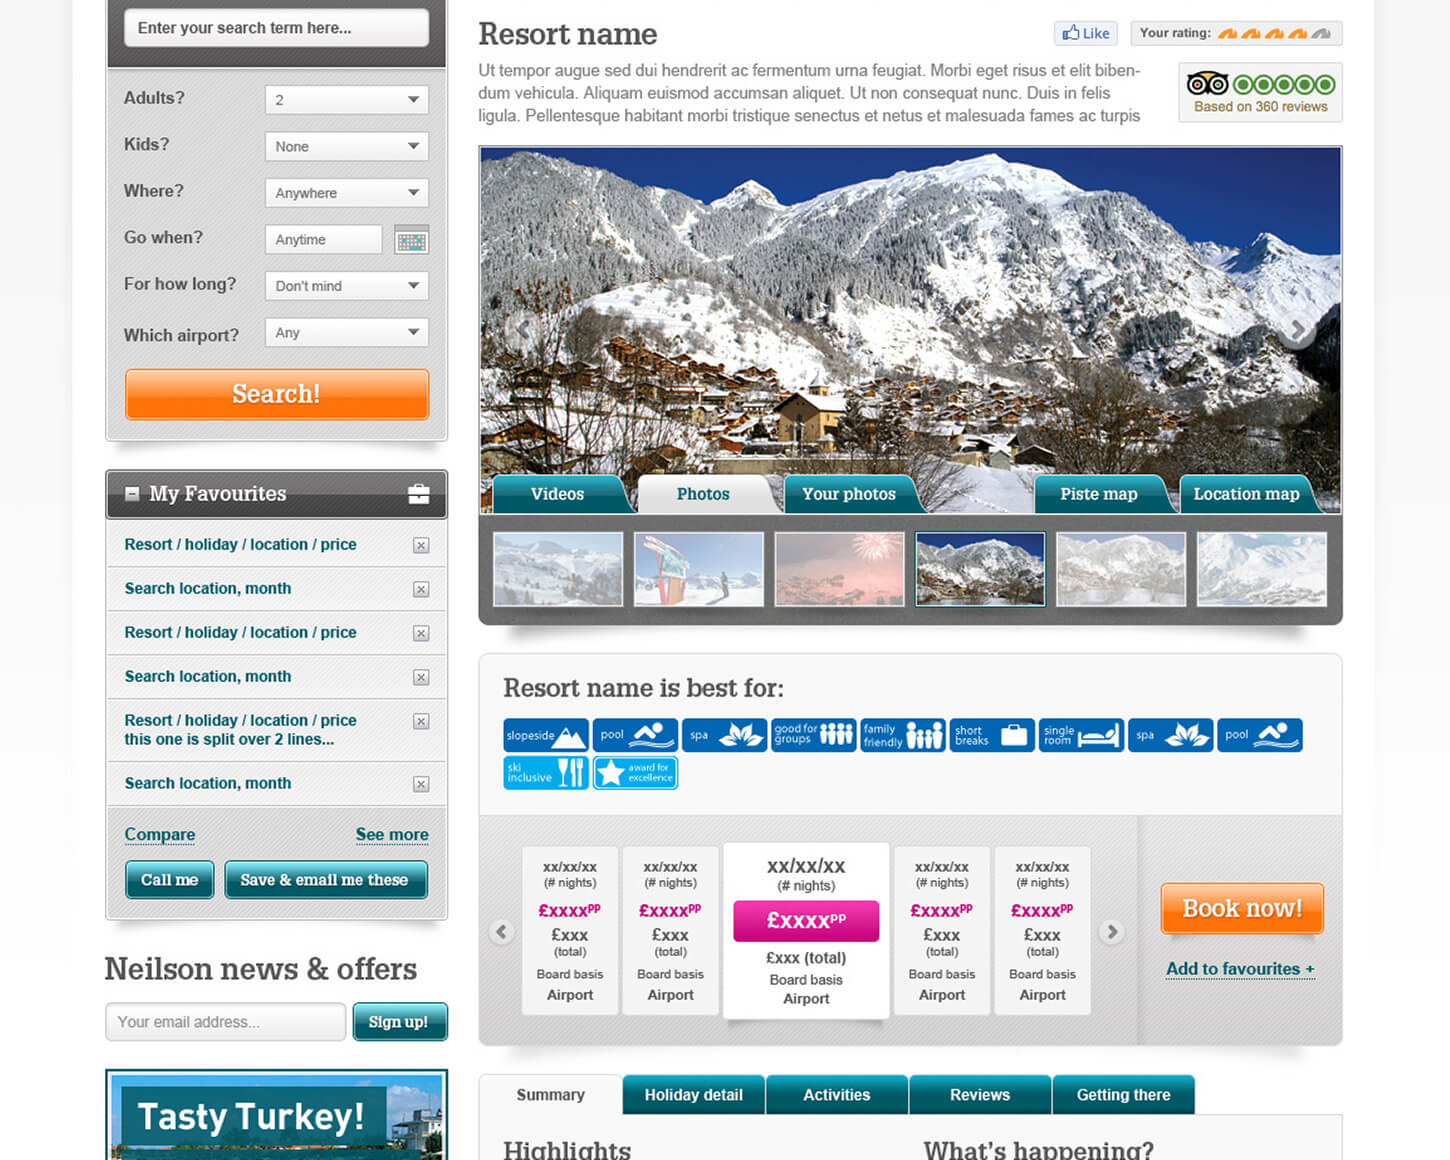 Neilson Holidays website detail page